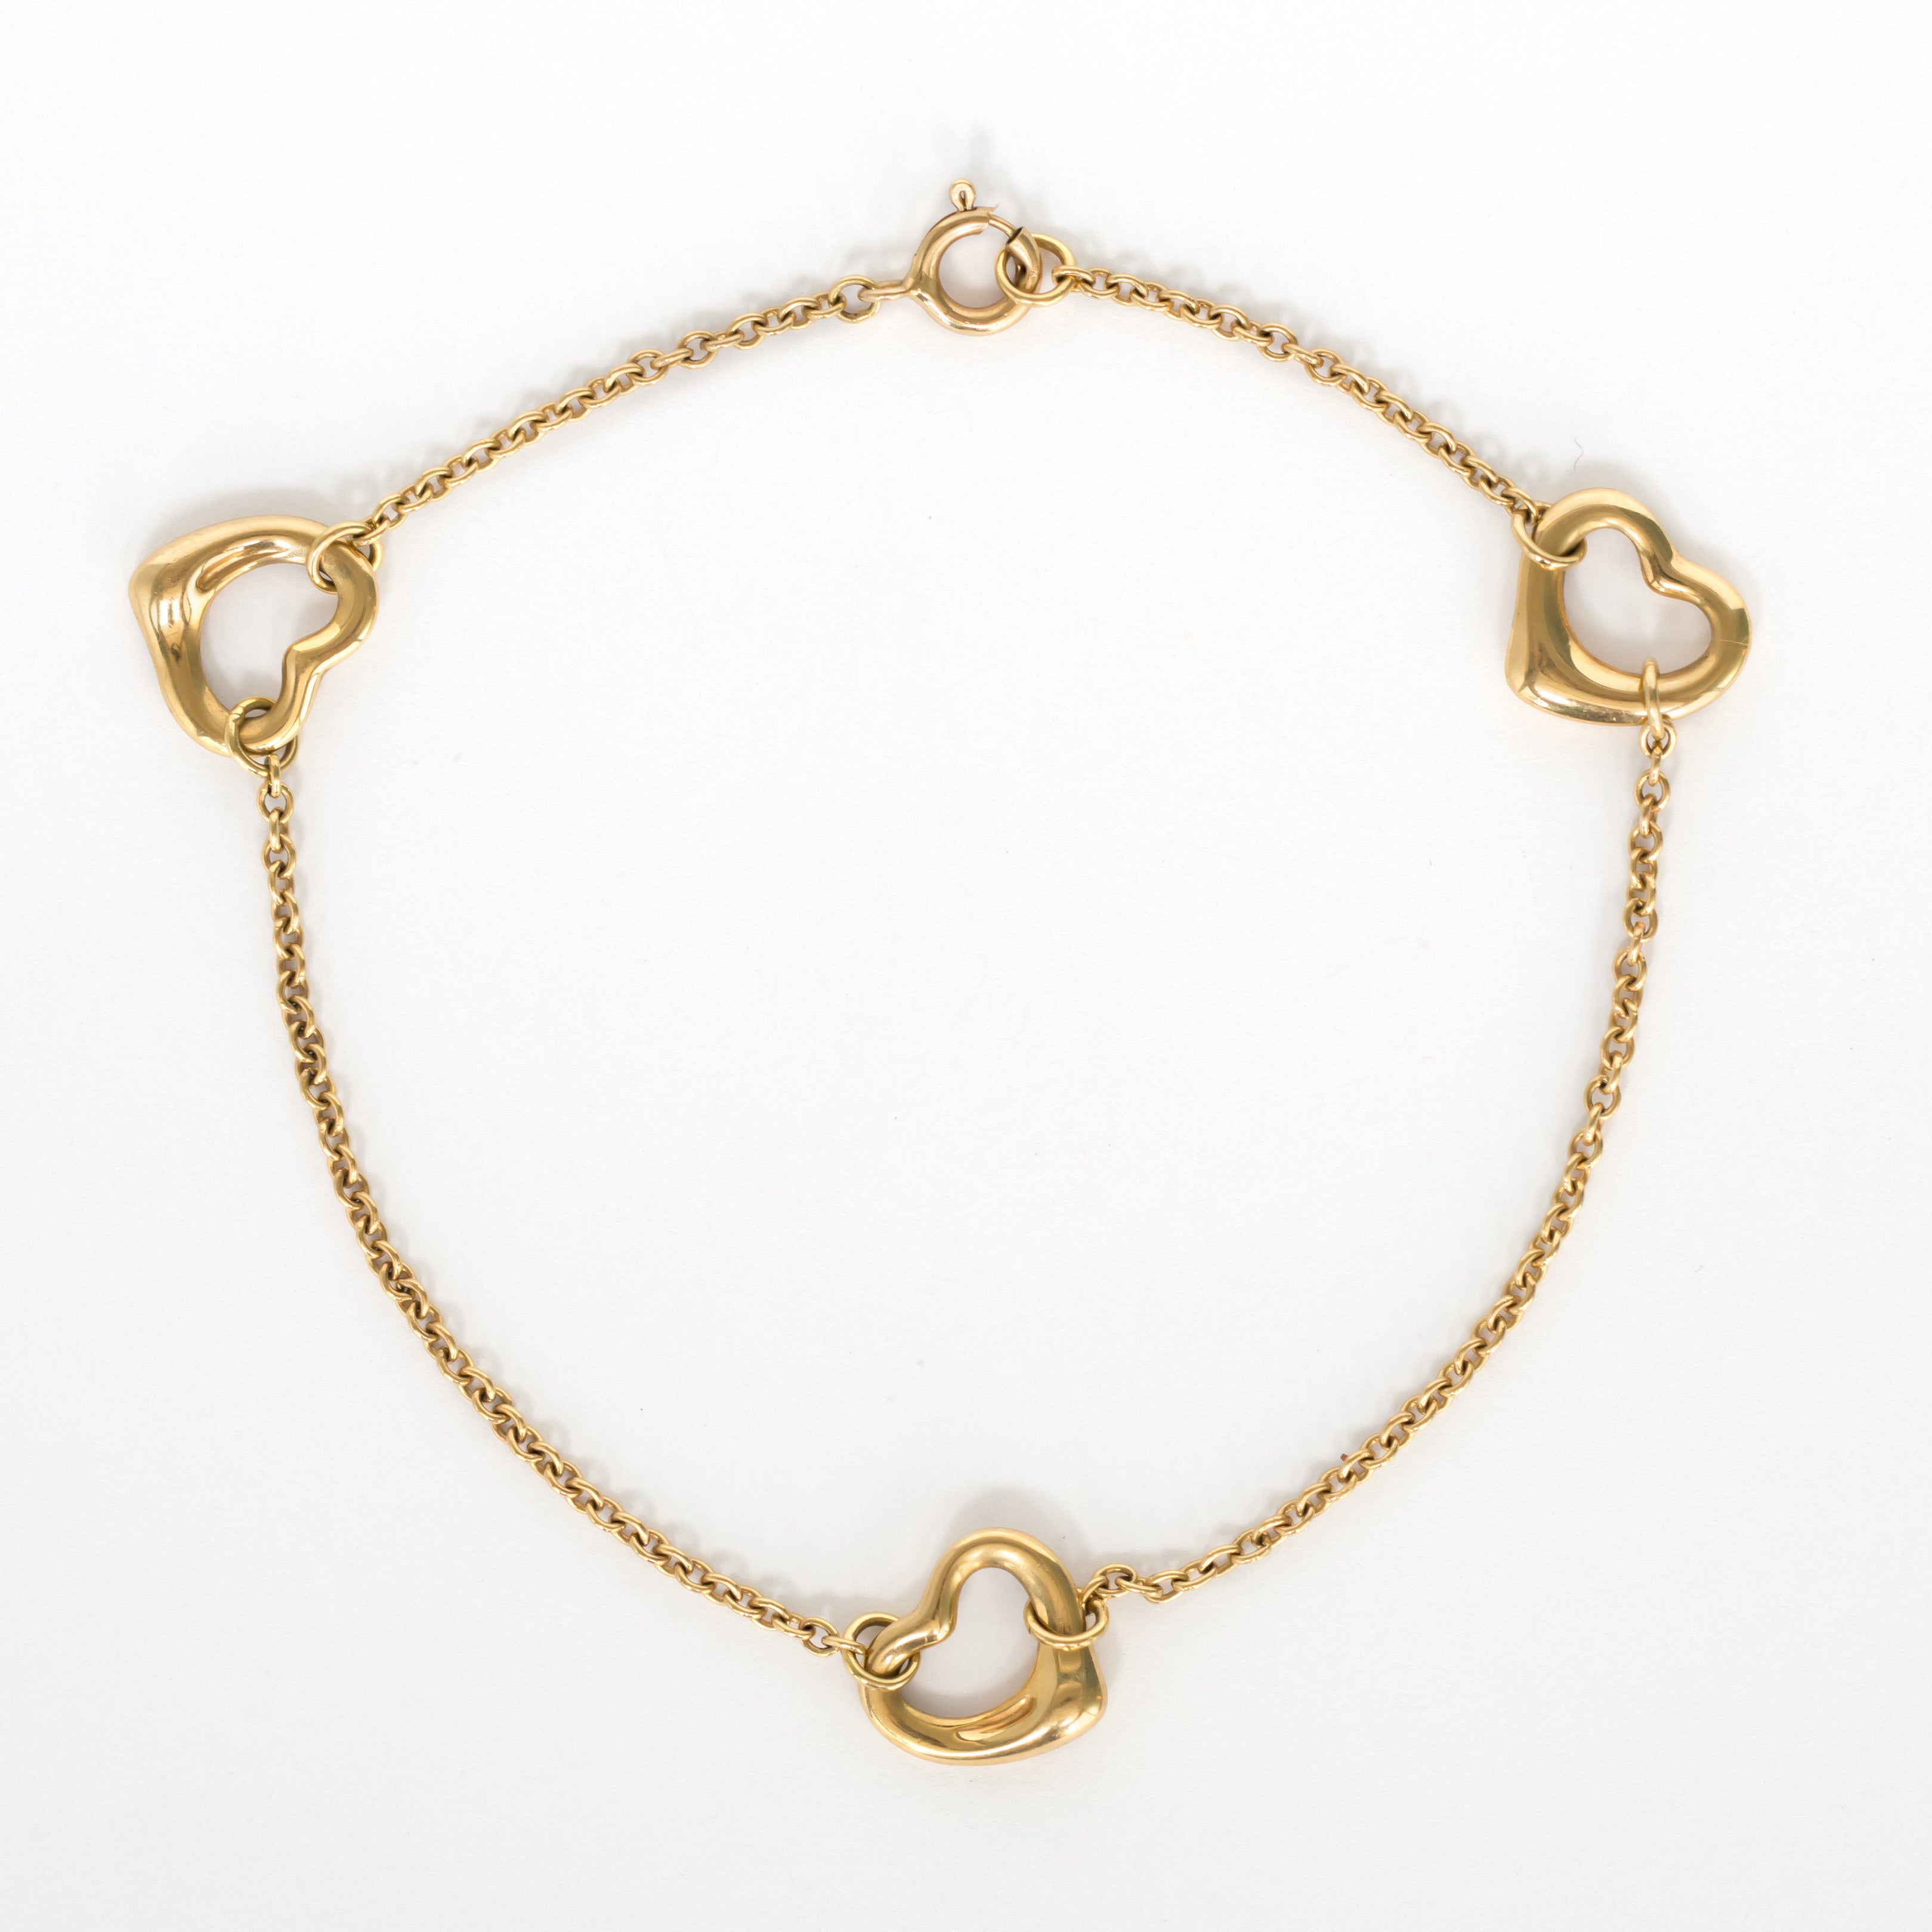 e12a99159 Elsa Peretti by Tiffany & Co Yellow Gold Bracelet - The Verma Group